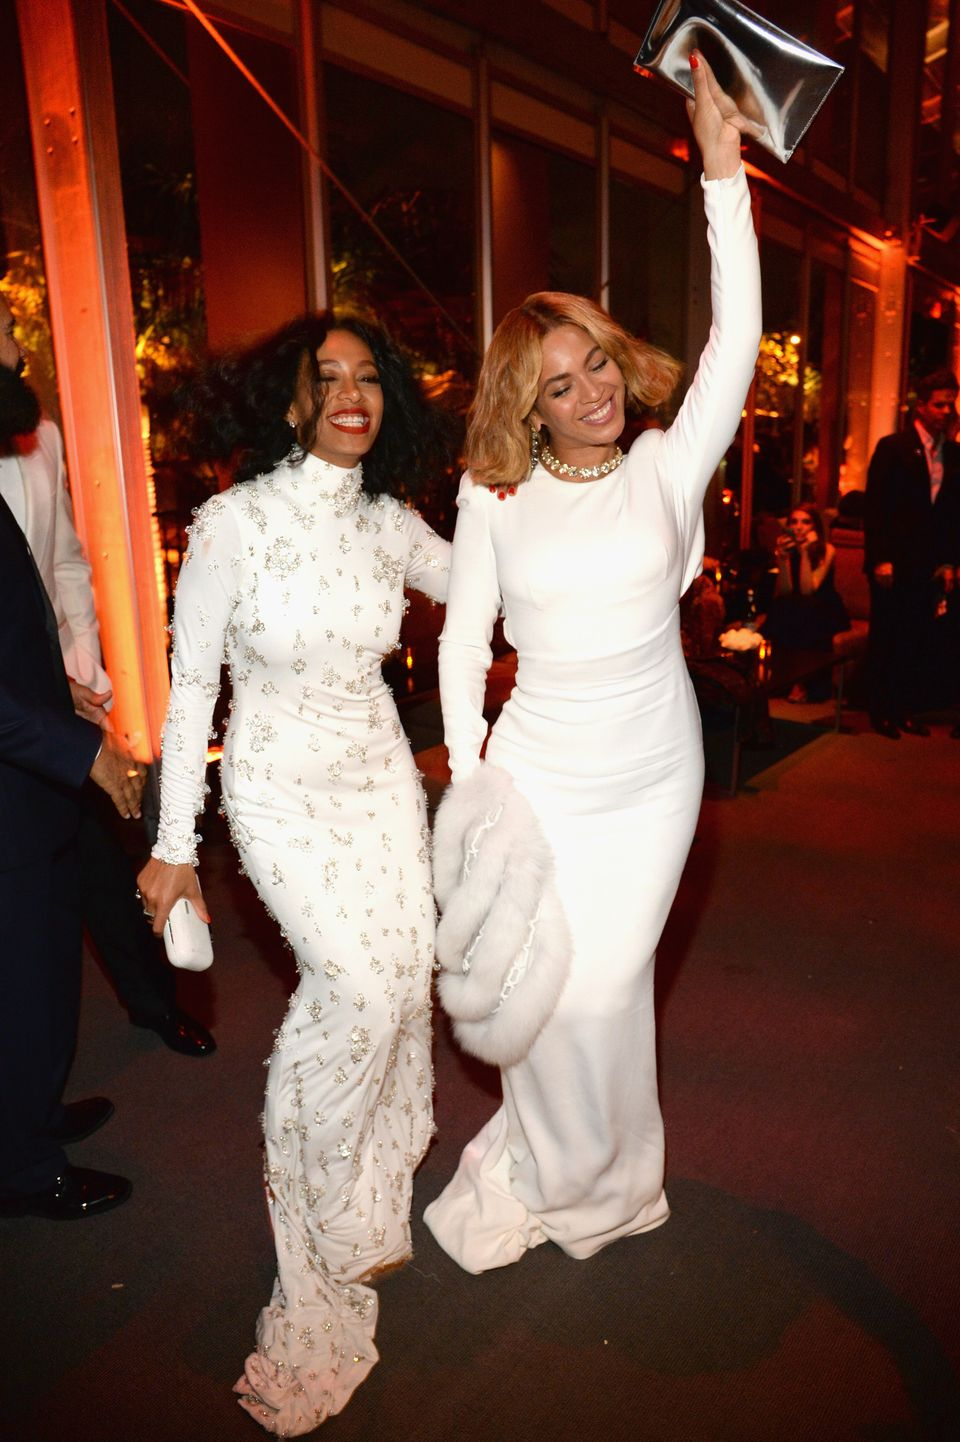 BEVERLY HILLS, CA - FEBRUARY 22:  (EXCLUSIVE ACCESS, SPECIAL RATES APPLY)  Solange and Beyonce attend  the 2015 Vanity Fair O